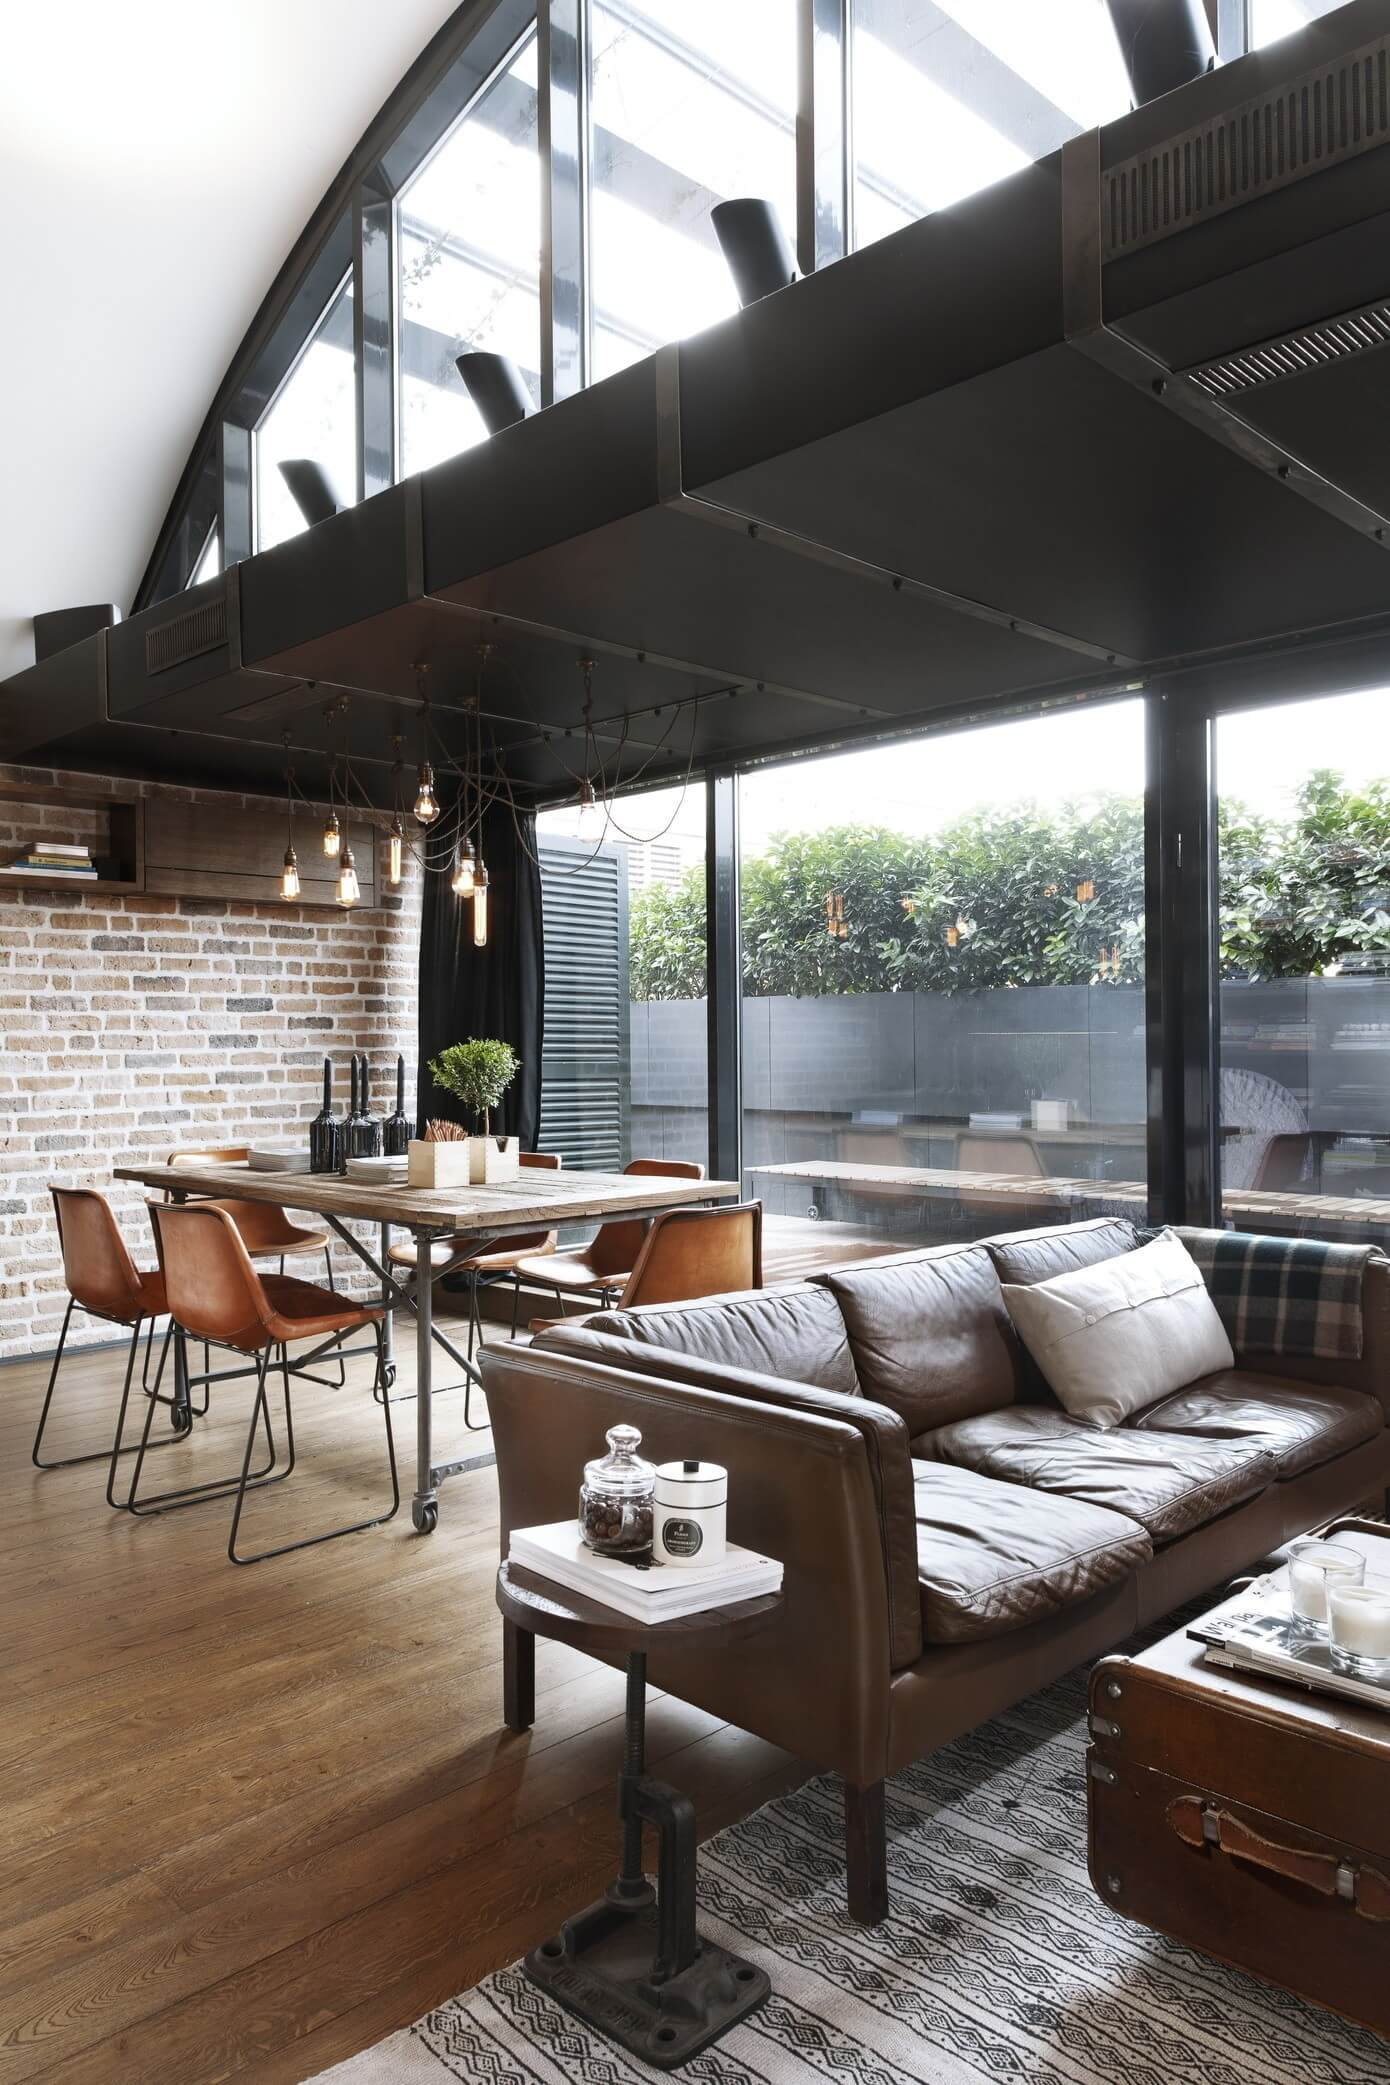 Ideal Industrial Living Room & Industrial Decor Ideas \u0026 Design Guide - Lazy Loft - Blog by FROY